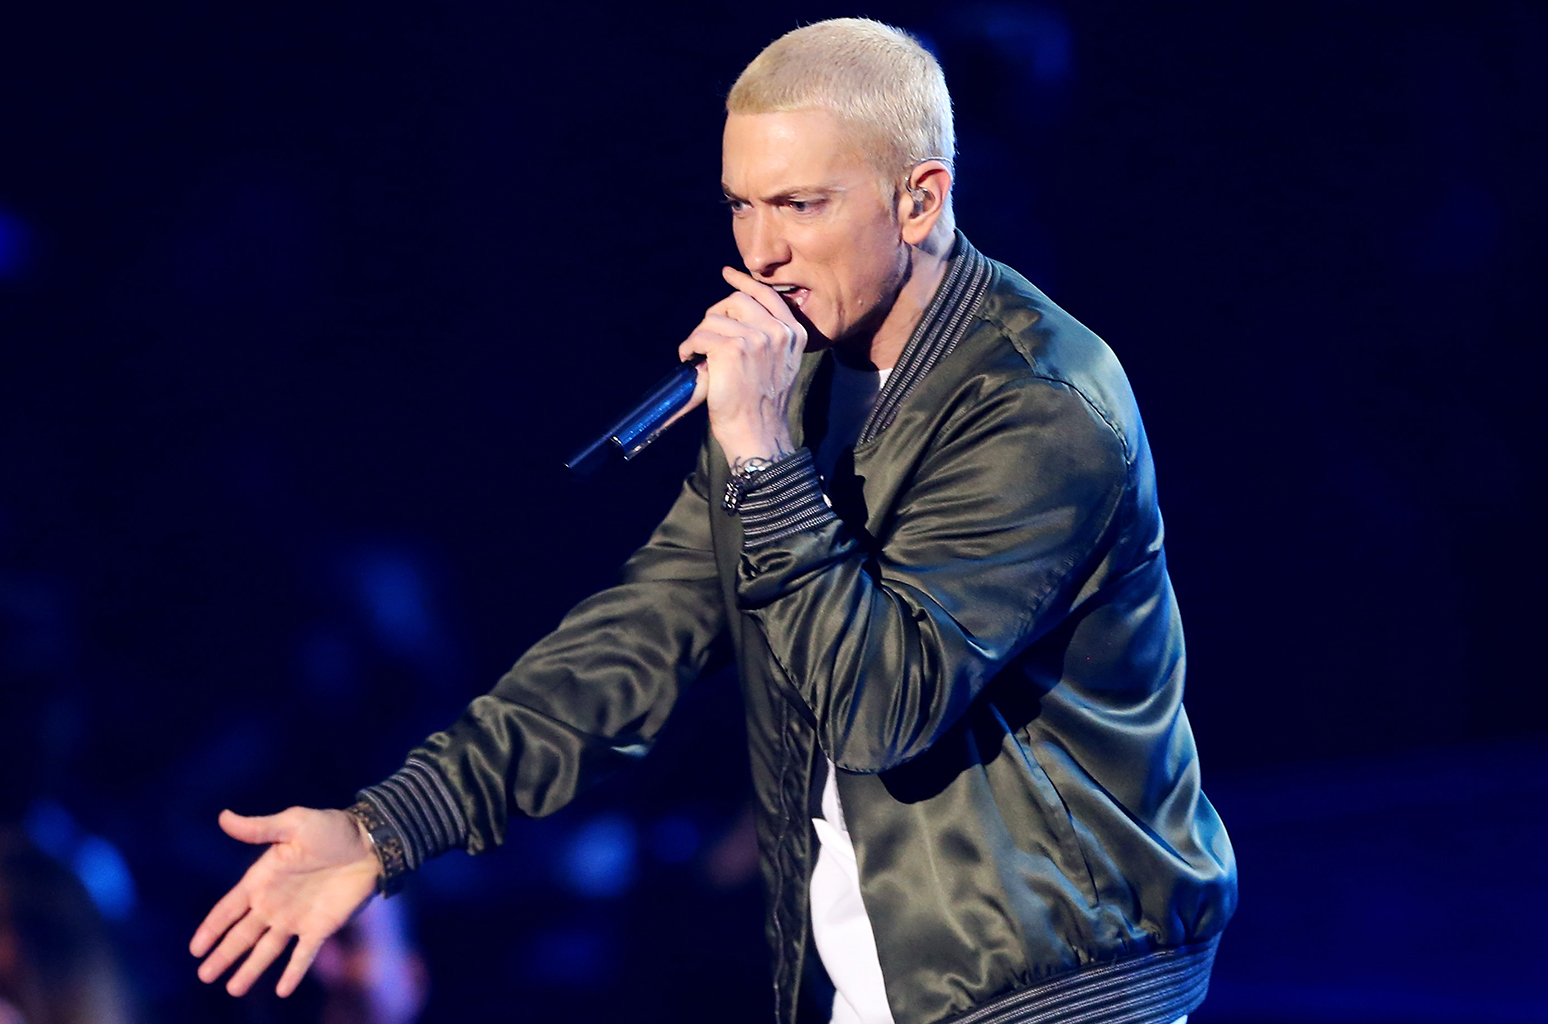 Eminem's New Album Is Done According To Mr. Porter